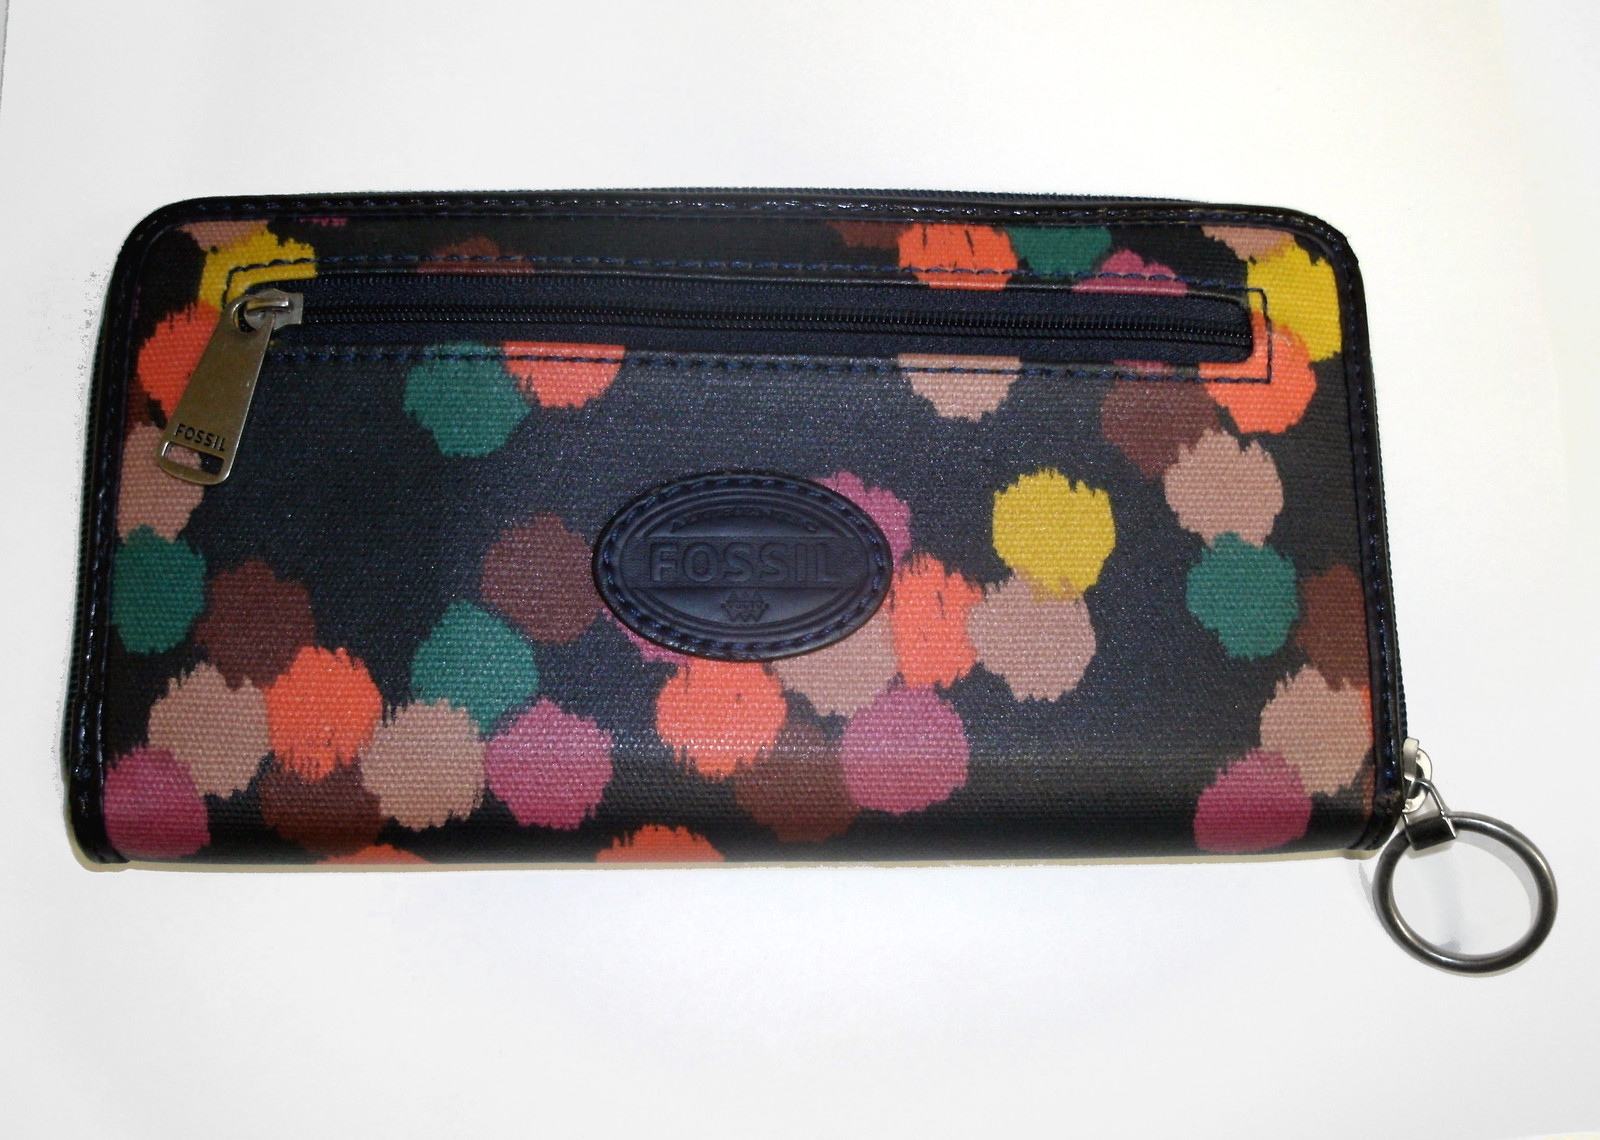 Fossil Coated Canvas Navy Ziparound Accordion Clutch Large Wallet